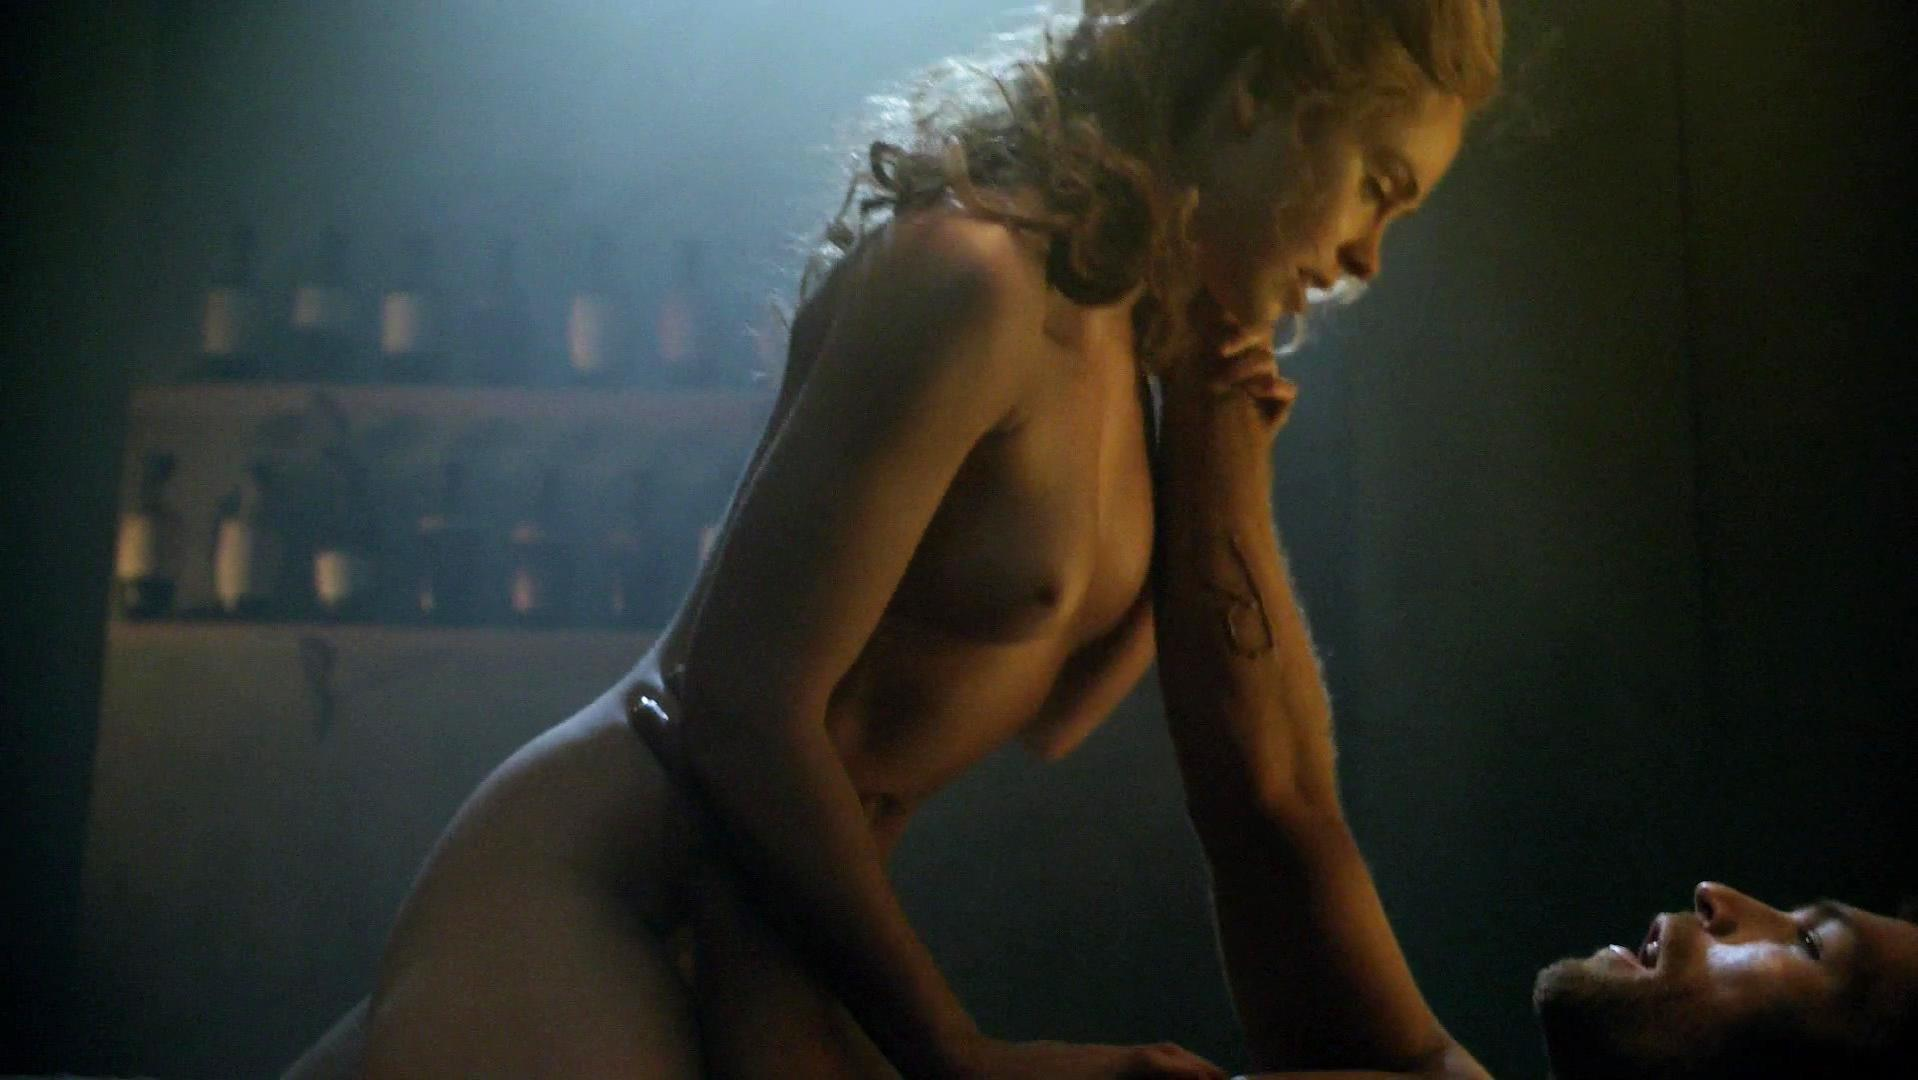 Anna hutchison spartacus s03e08 - 3 part 8